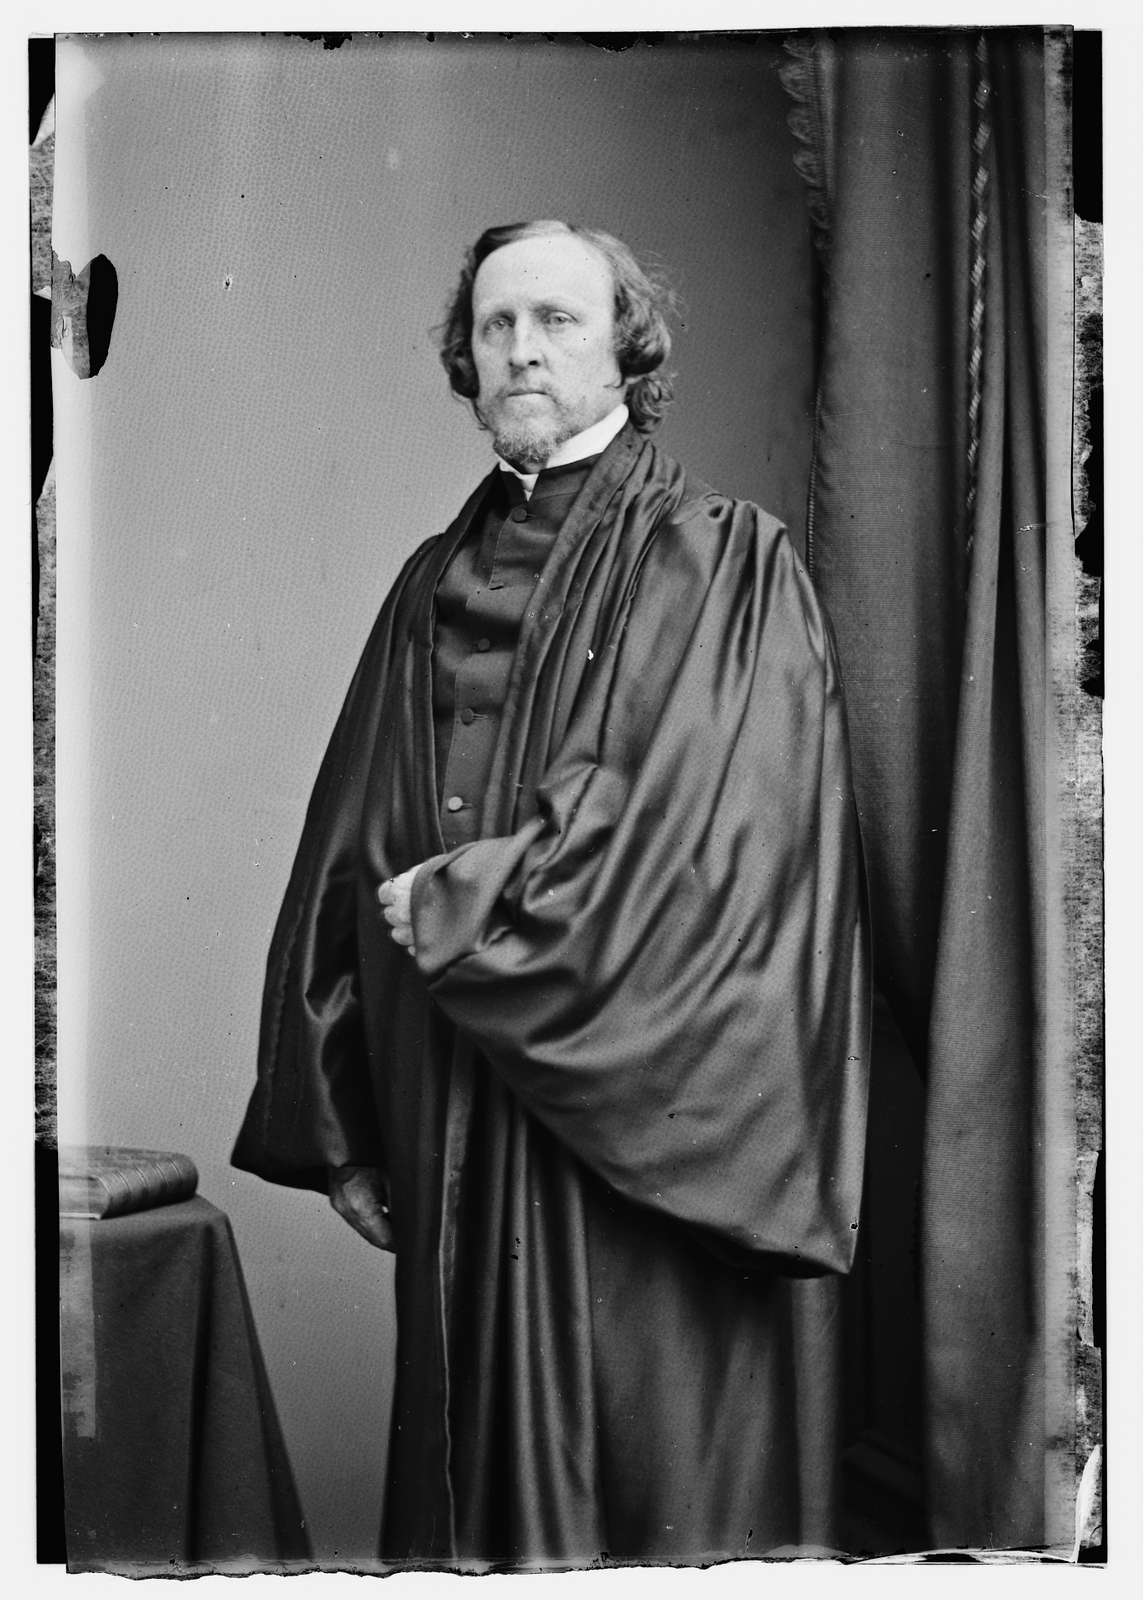 Rev. Gillette